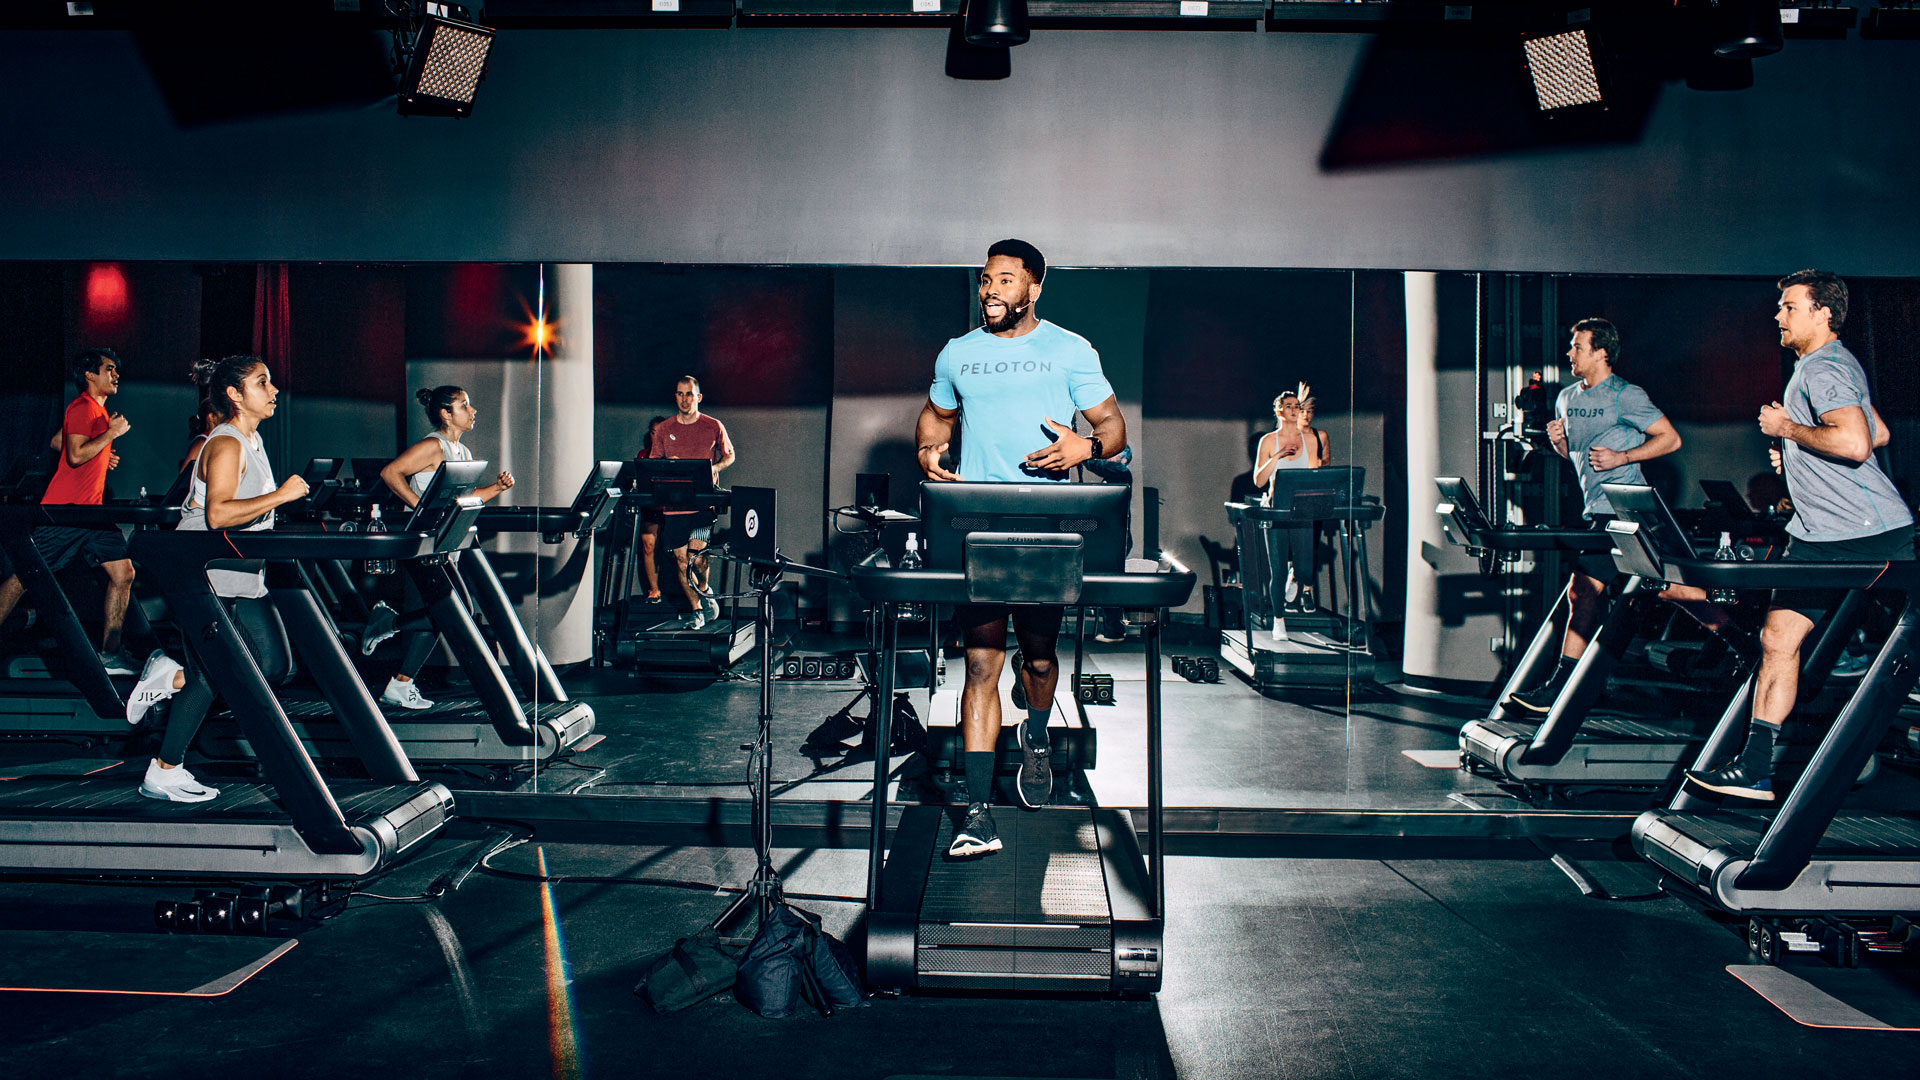 """<p><b style="""""""">Chase Tucker </b>leads a live boot camp class at Peloton's West Village studio in New York City.</p>"""